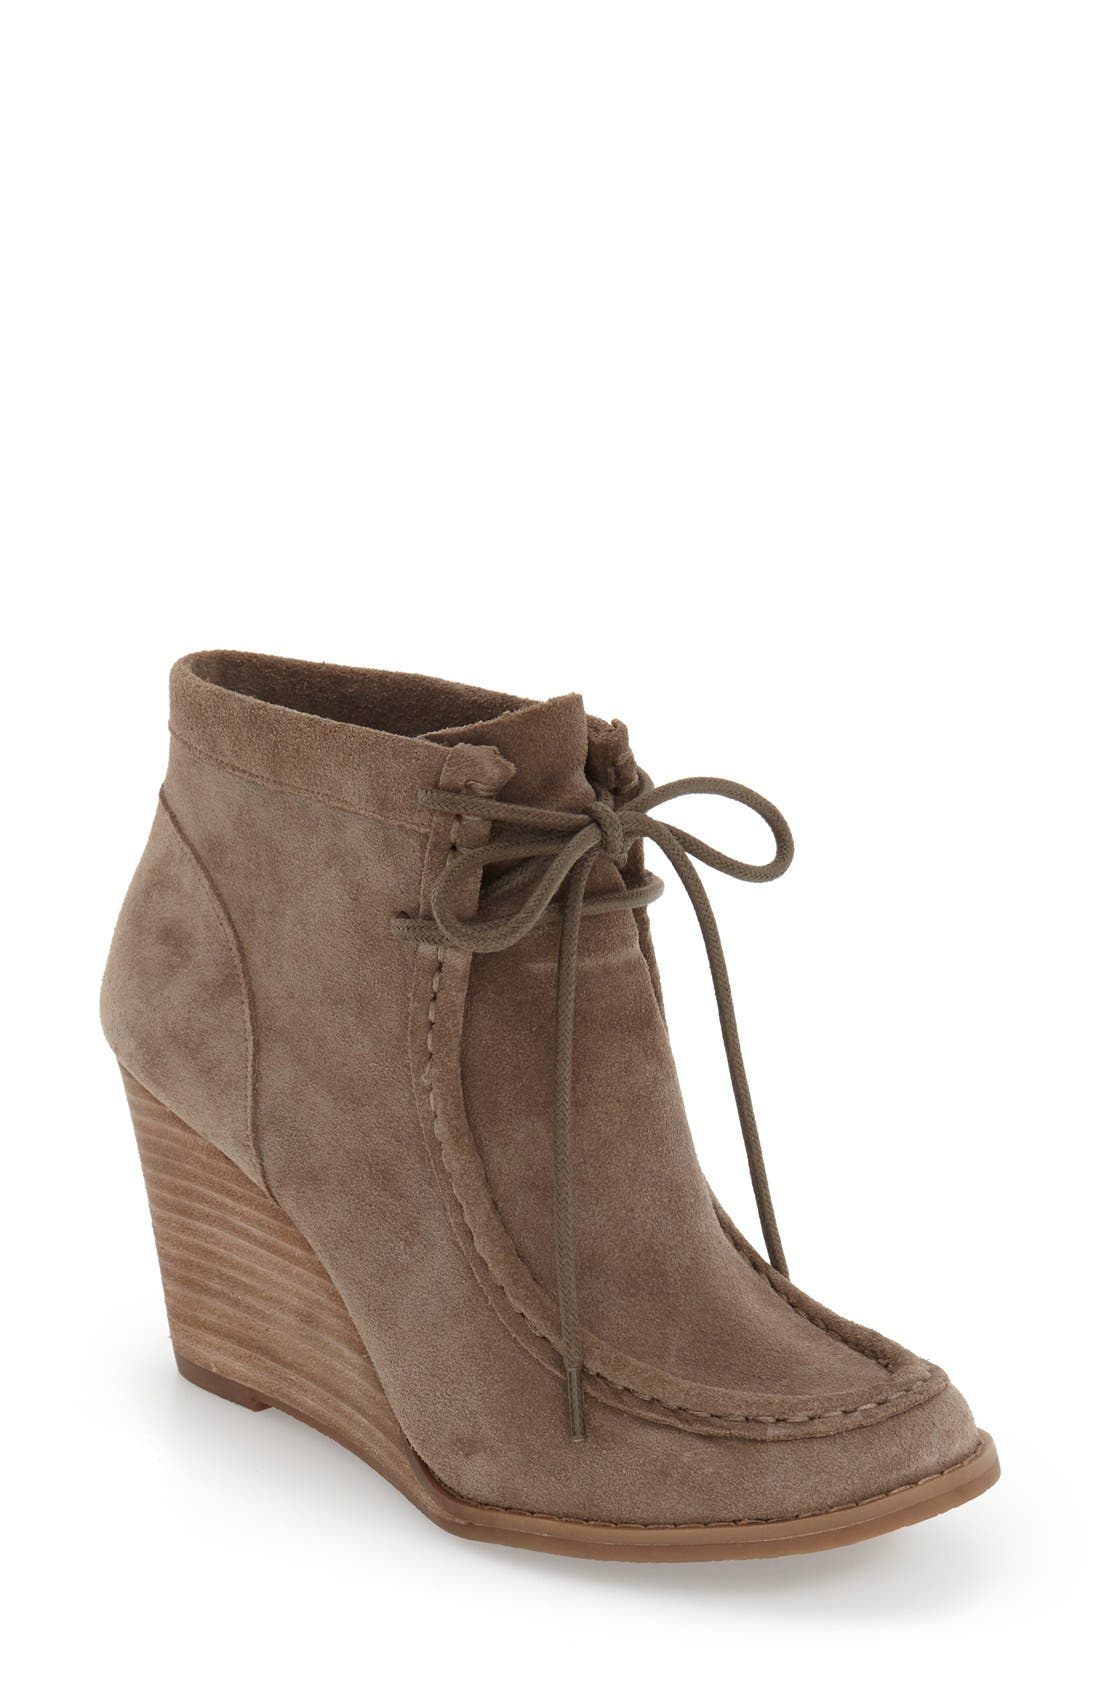 Alternate Image 1 Selected - Lucky Brand 'Ysabel' Wedge Chukka Boot (Women)